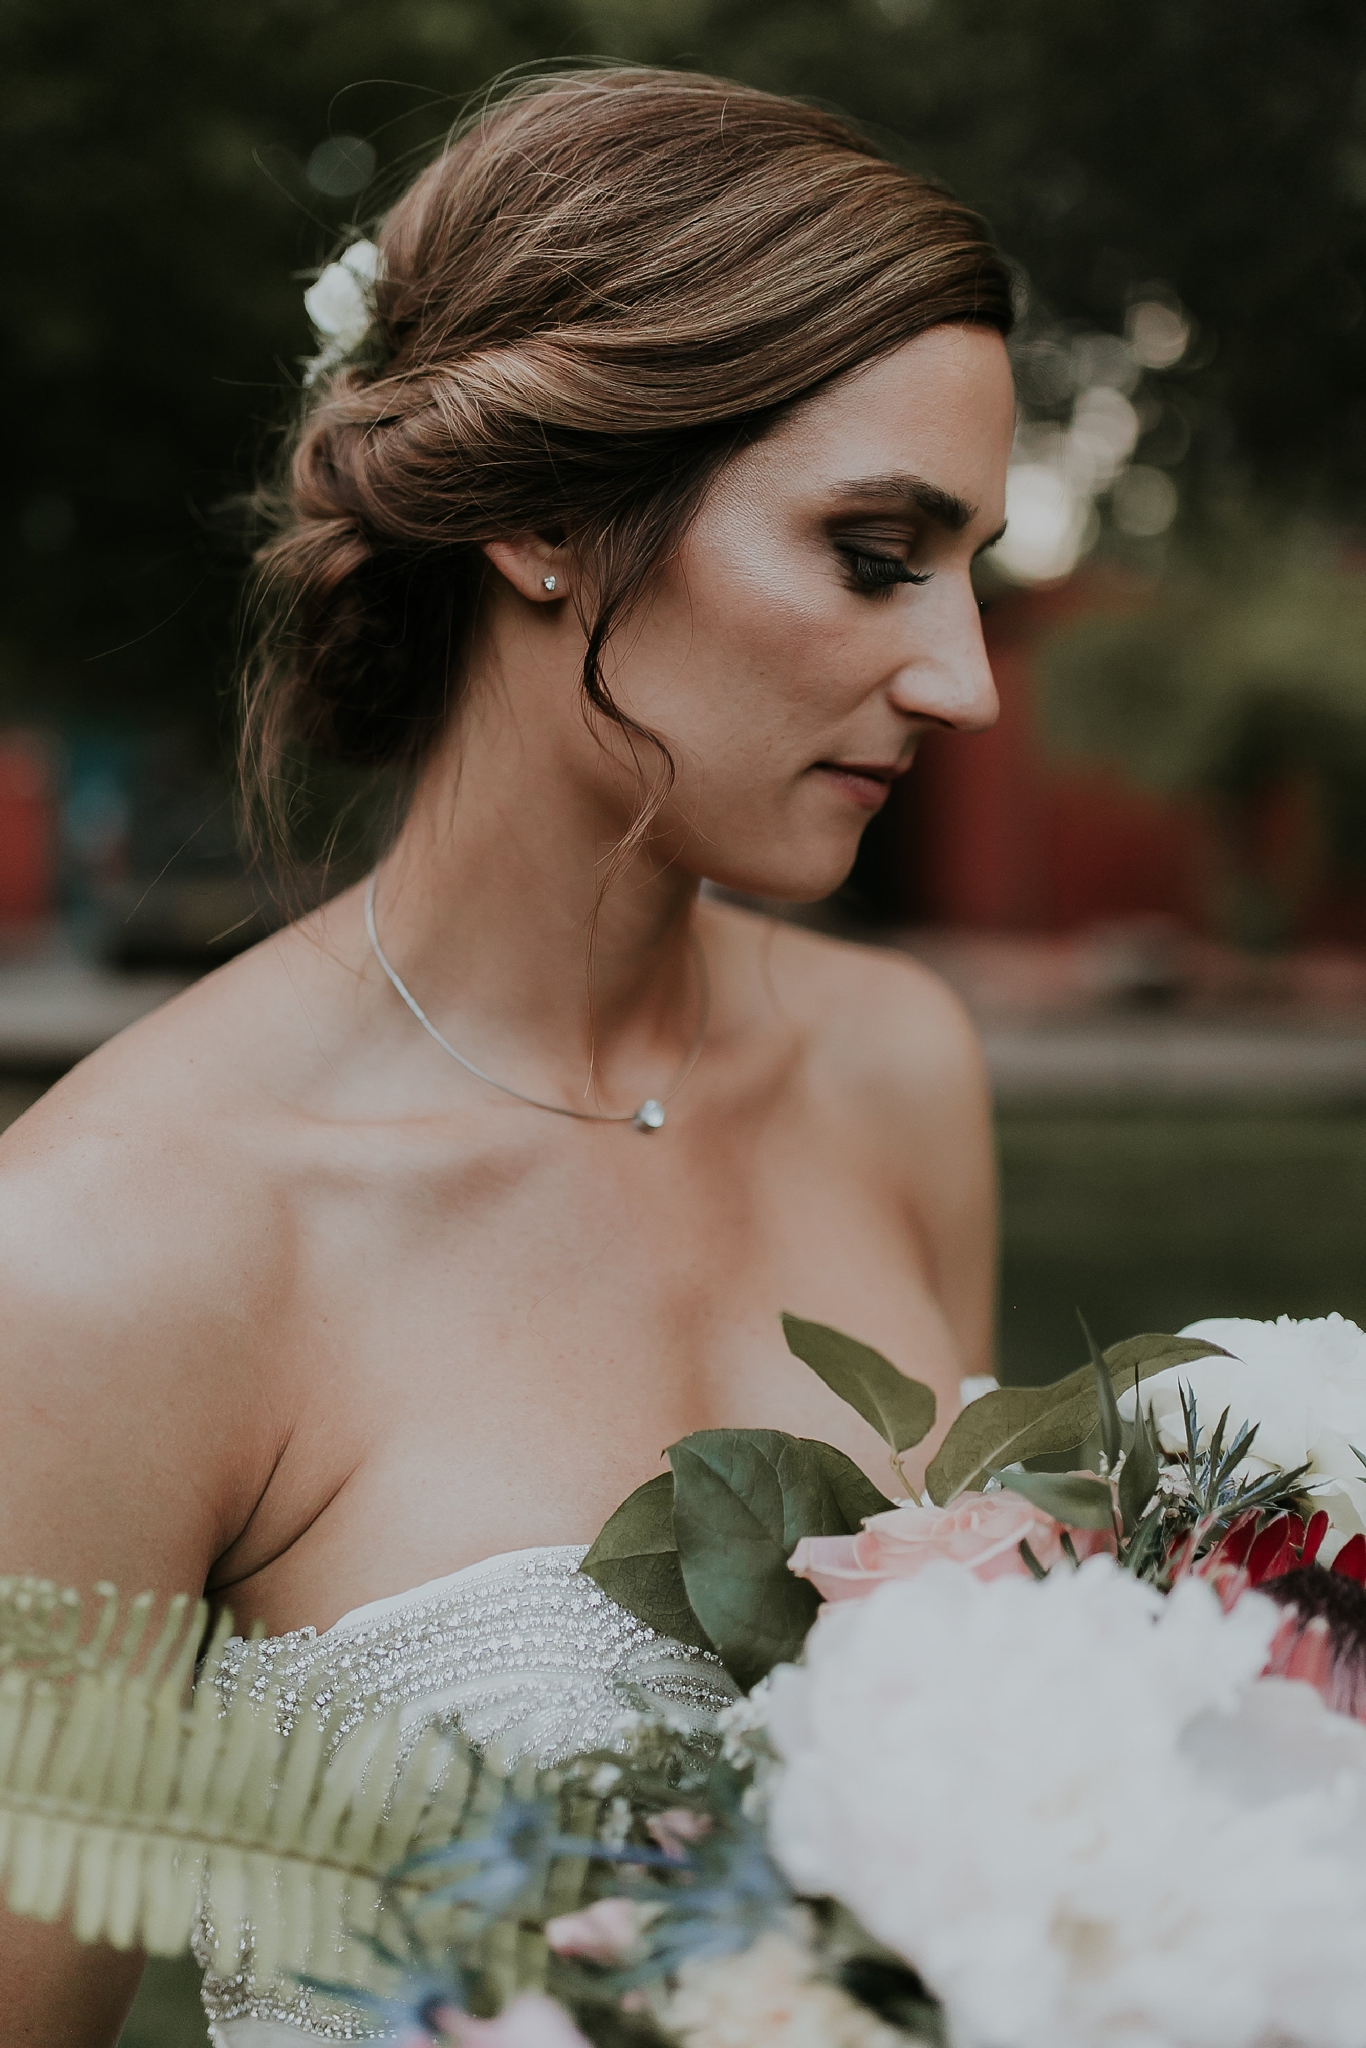 Alicia+lucia+photography+-+albuquerque+wedding+photographer+-+santa+fe+wedding+photography+-+new+mexico+wedding+photographer+-+new+mexico+wedding+-+wedding+makeup+-+makeup+artist+-+wedding+makeup+artist+-+bridal+makeup_0073.jpg